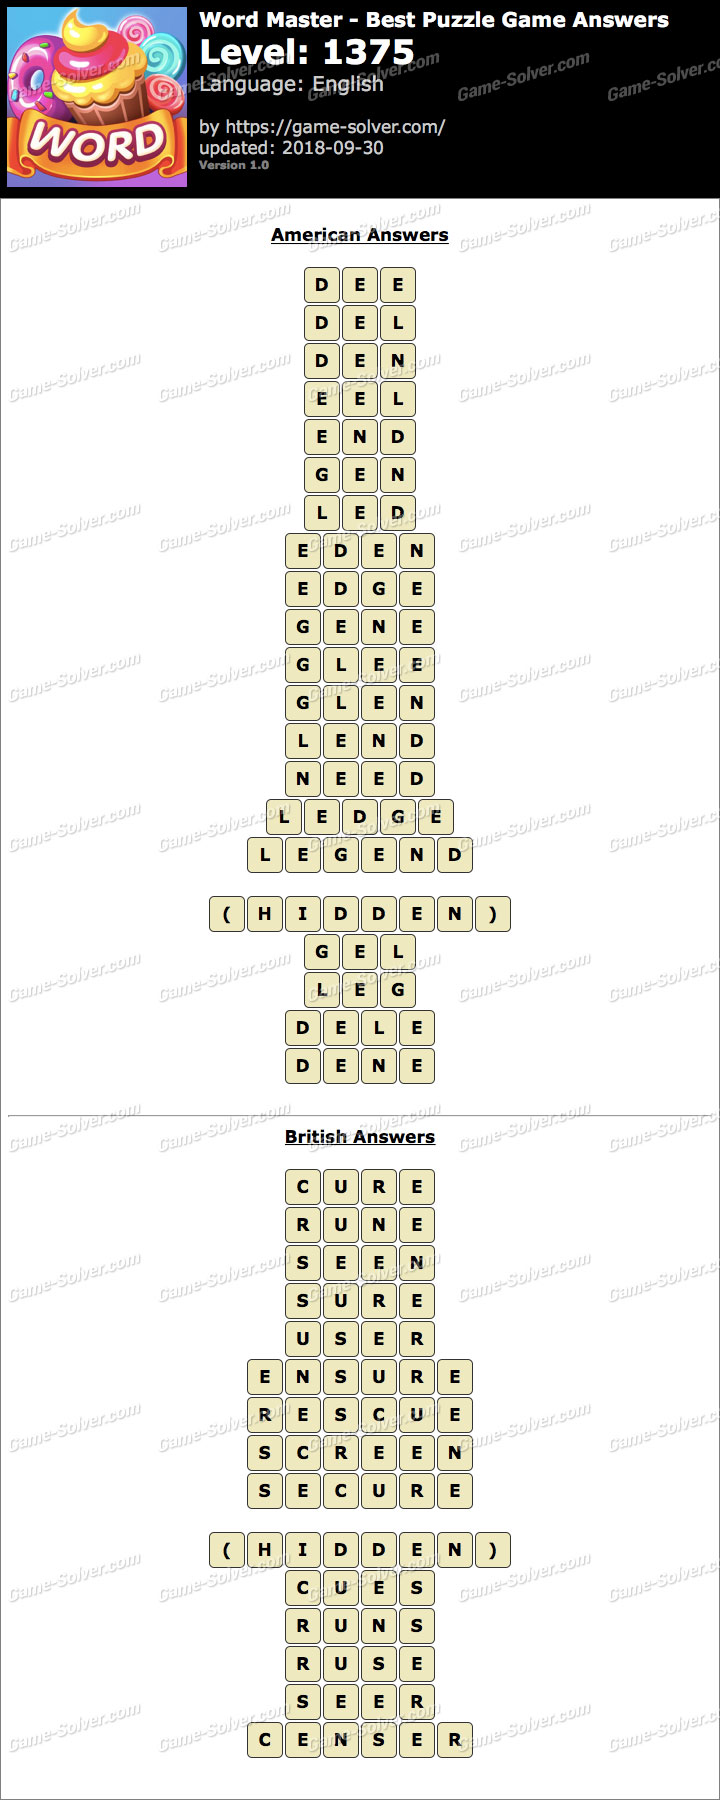 Word Master-Best Puzzle Game Level 1375 Answers